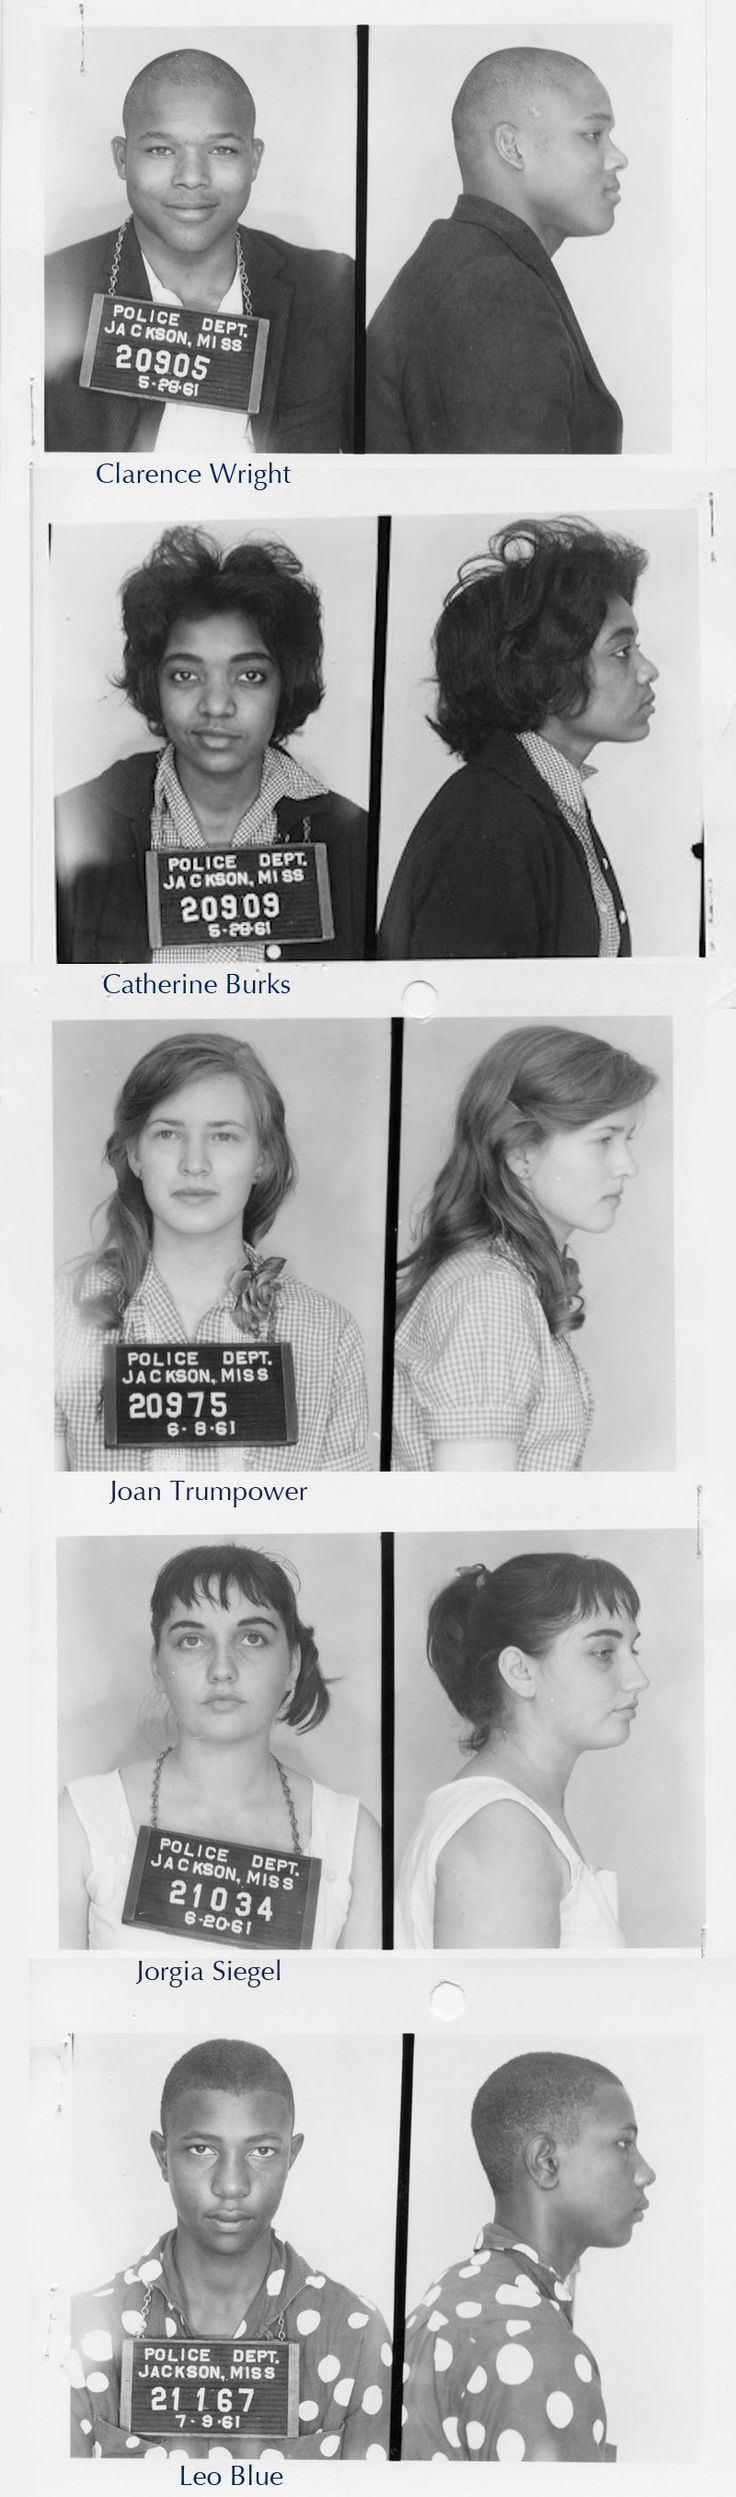 Mugshots of civil rights activist Freedom Riders, Jackson Mississippi, 1961